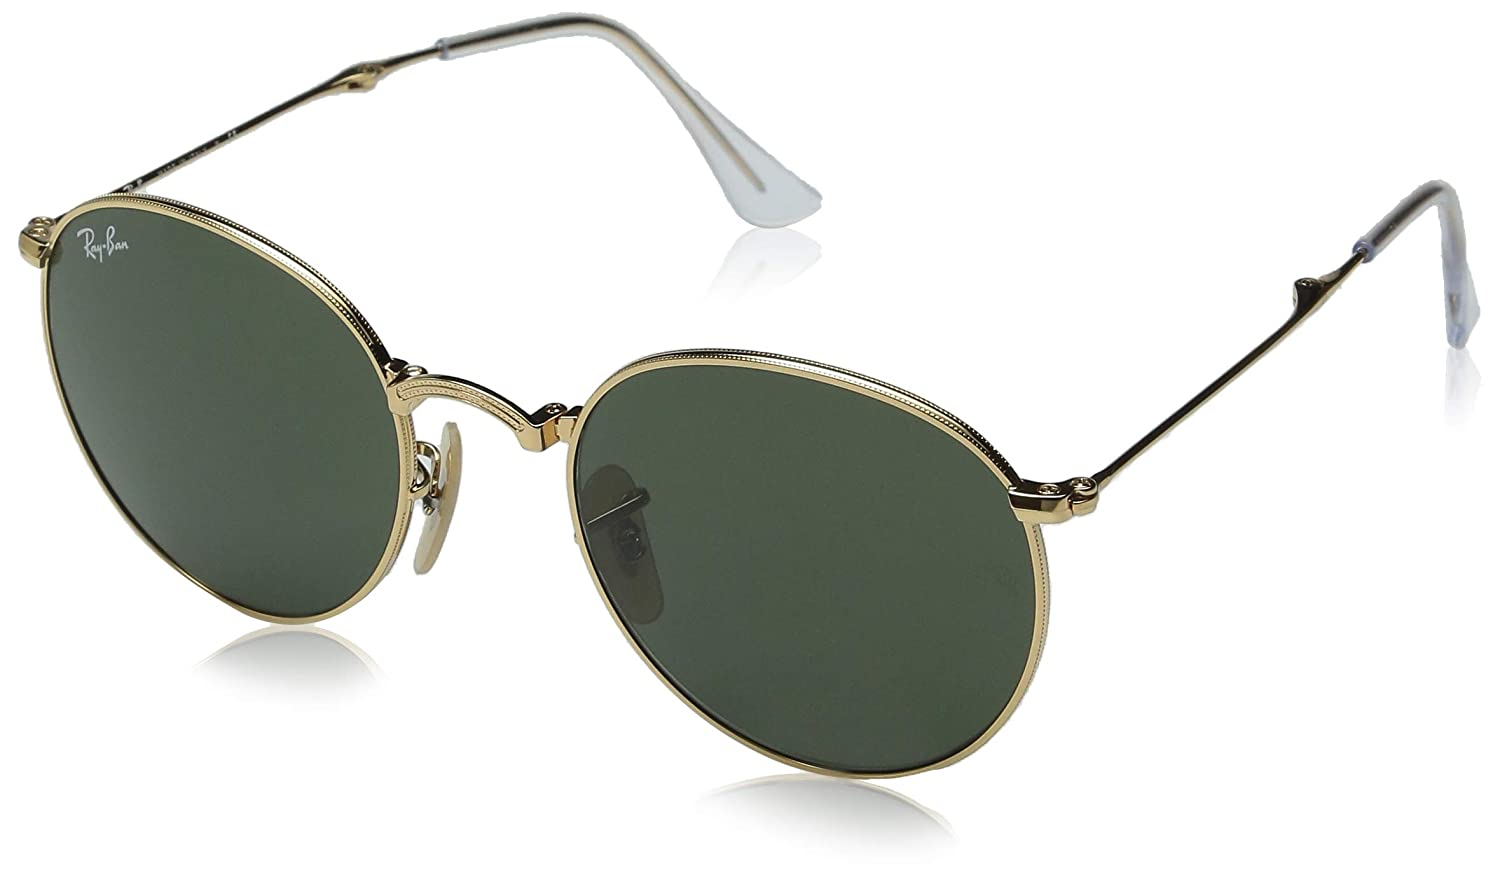 78f8011e0 Amazon.com: Ray-Ban RB3532 Round Metal Folding Sunglasses, Gold/Green,50  mm: Clothing